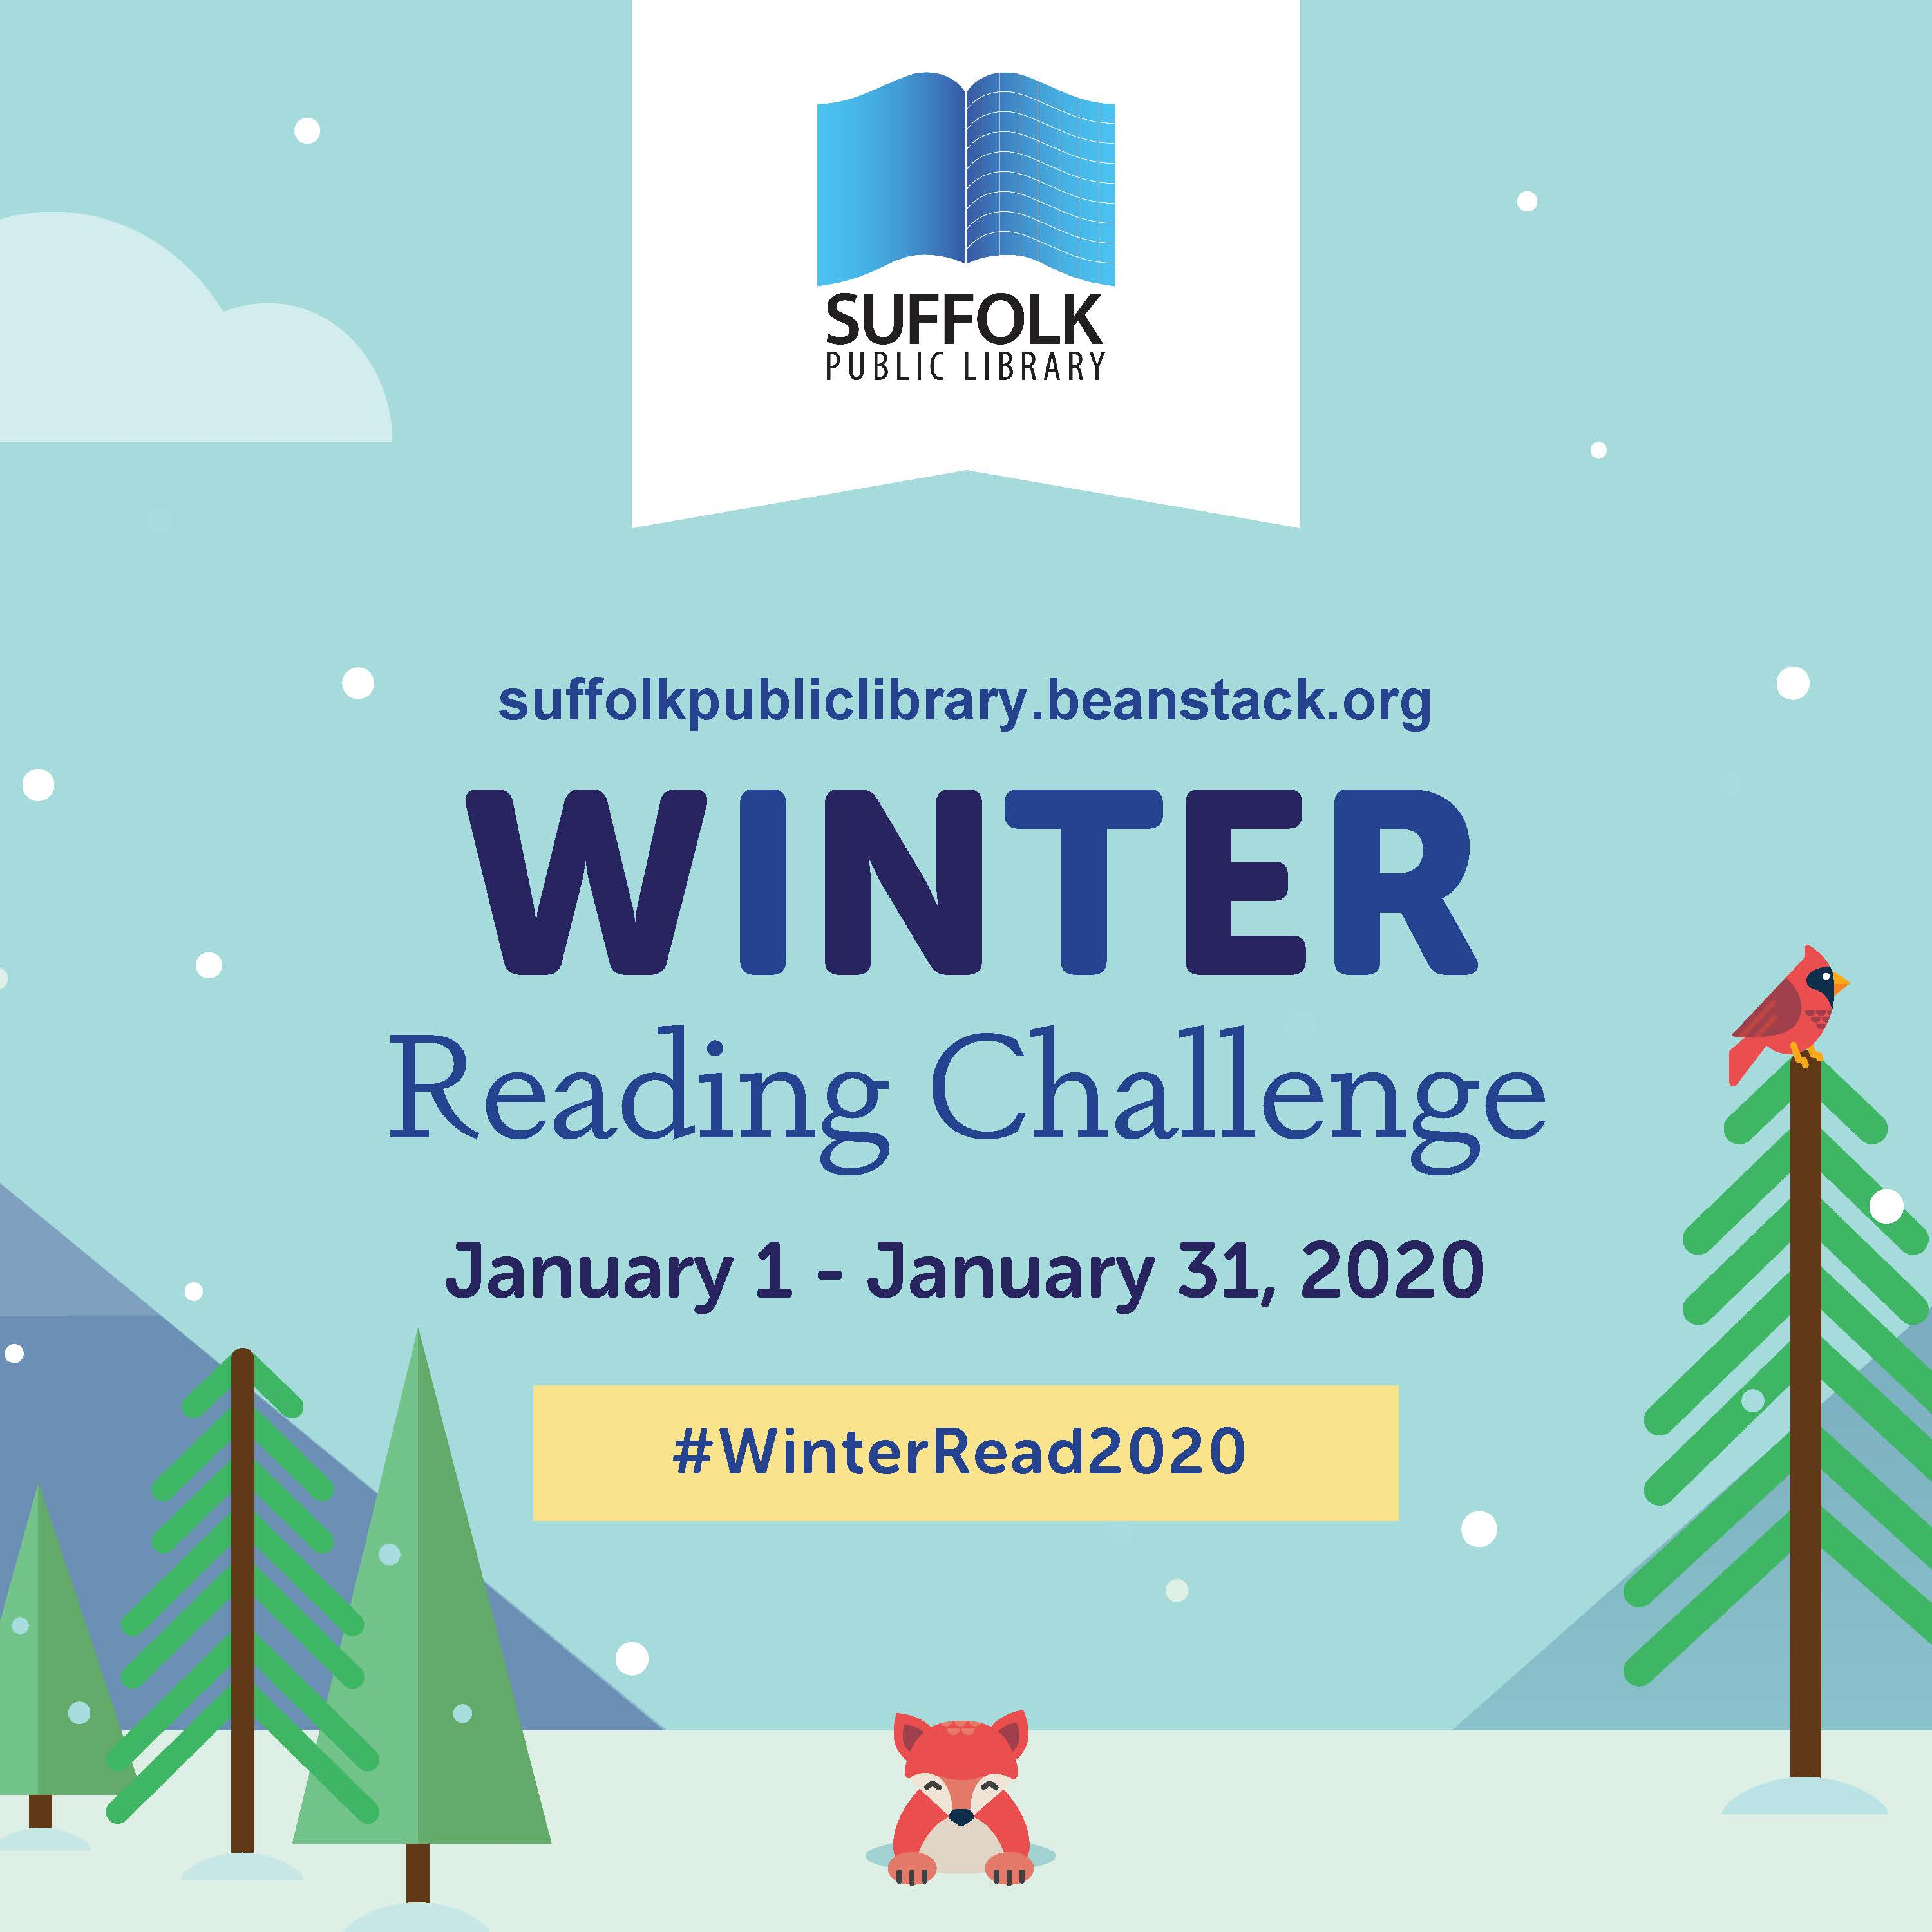 Winter Reading Challenge Graphic featuring a winter backdrop with snow on trees and a fox climbing o